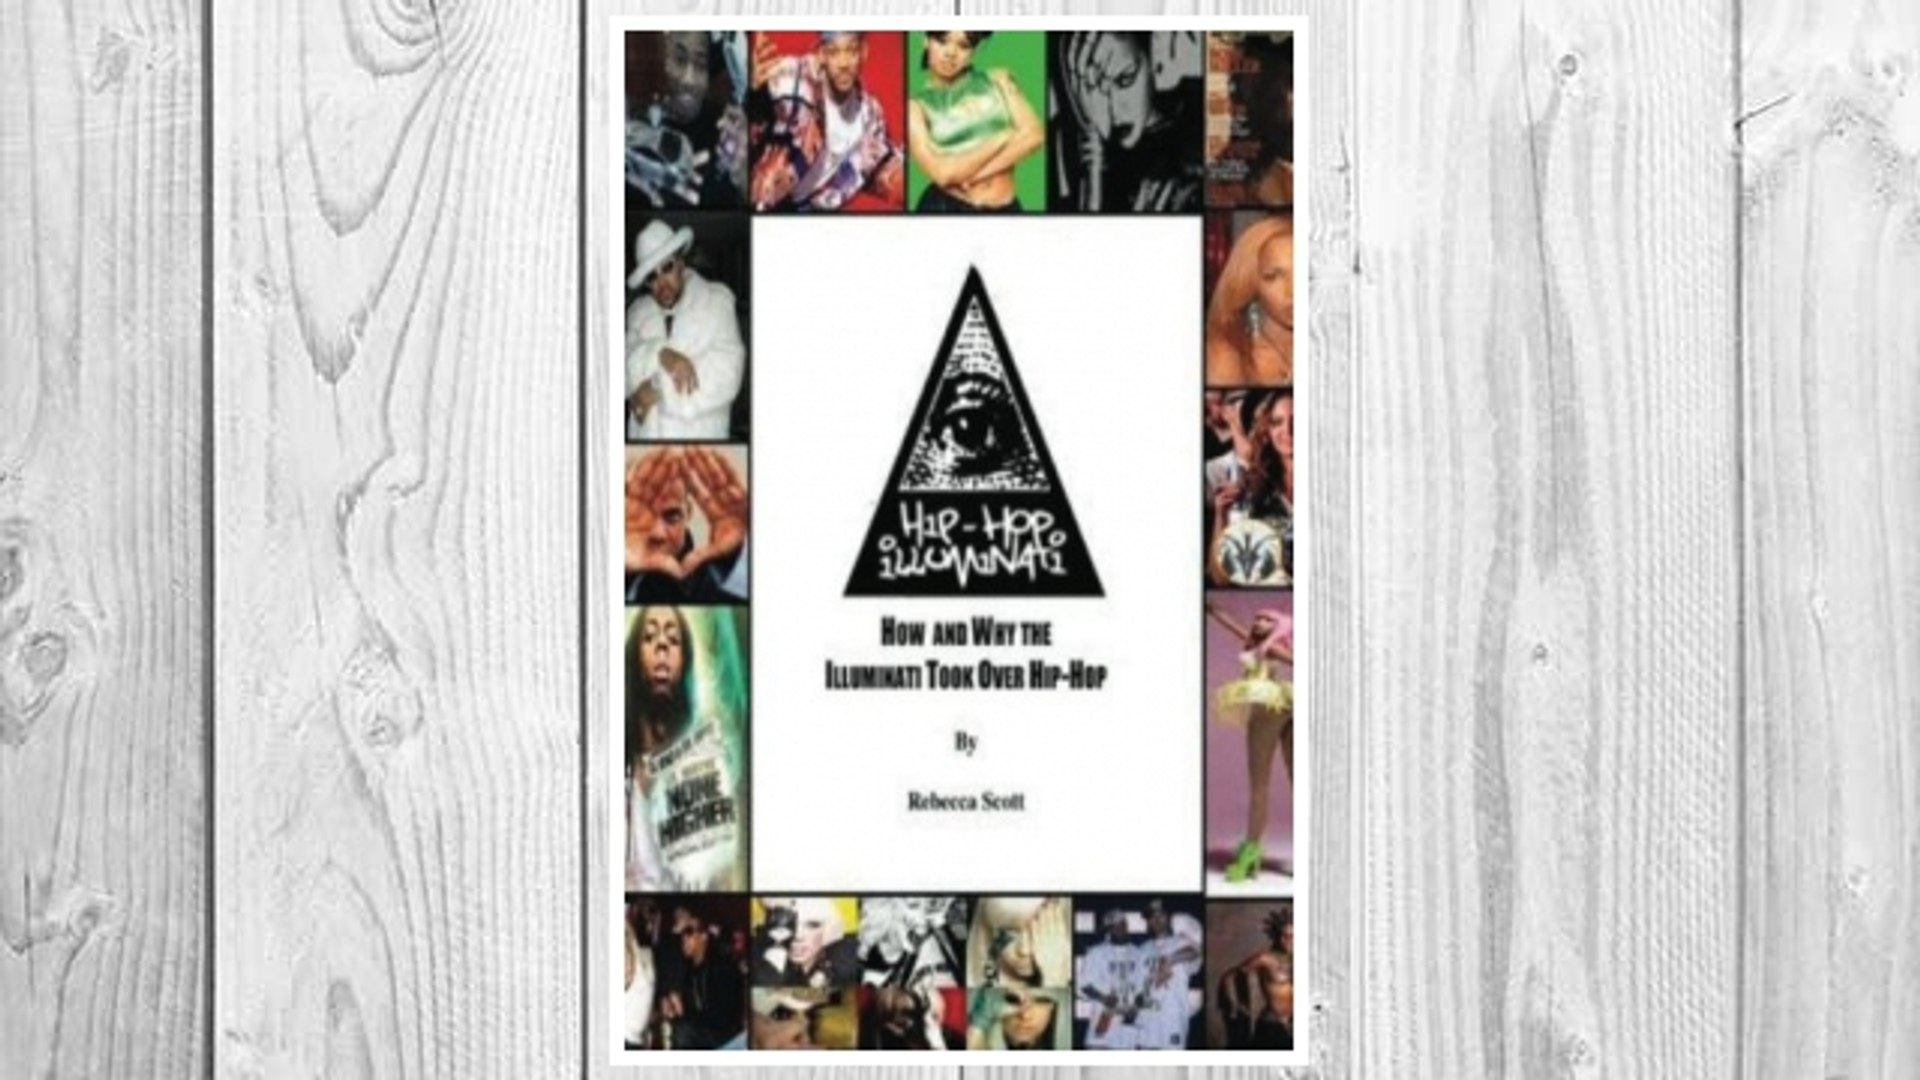 Download PDF Hip Hop Illuminati: How and Why the Illuminati Took Over Hip Hop (Volume 1) FREE